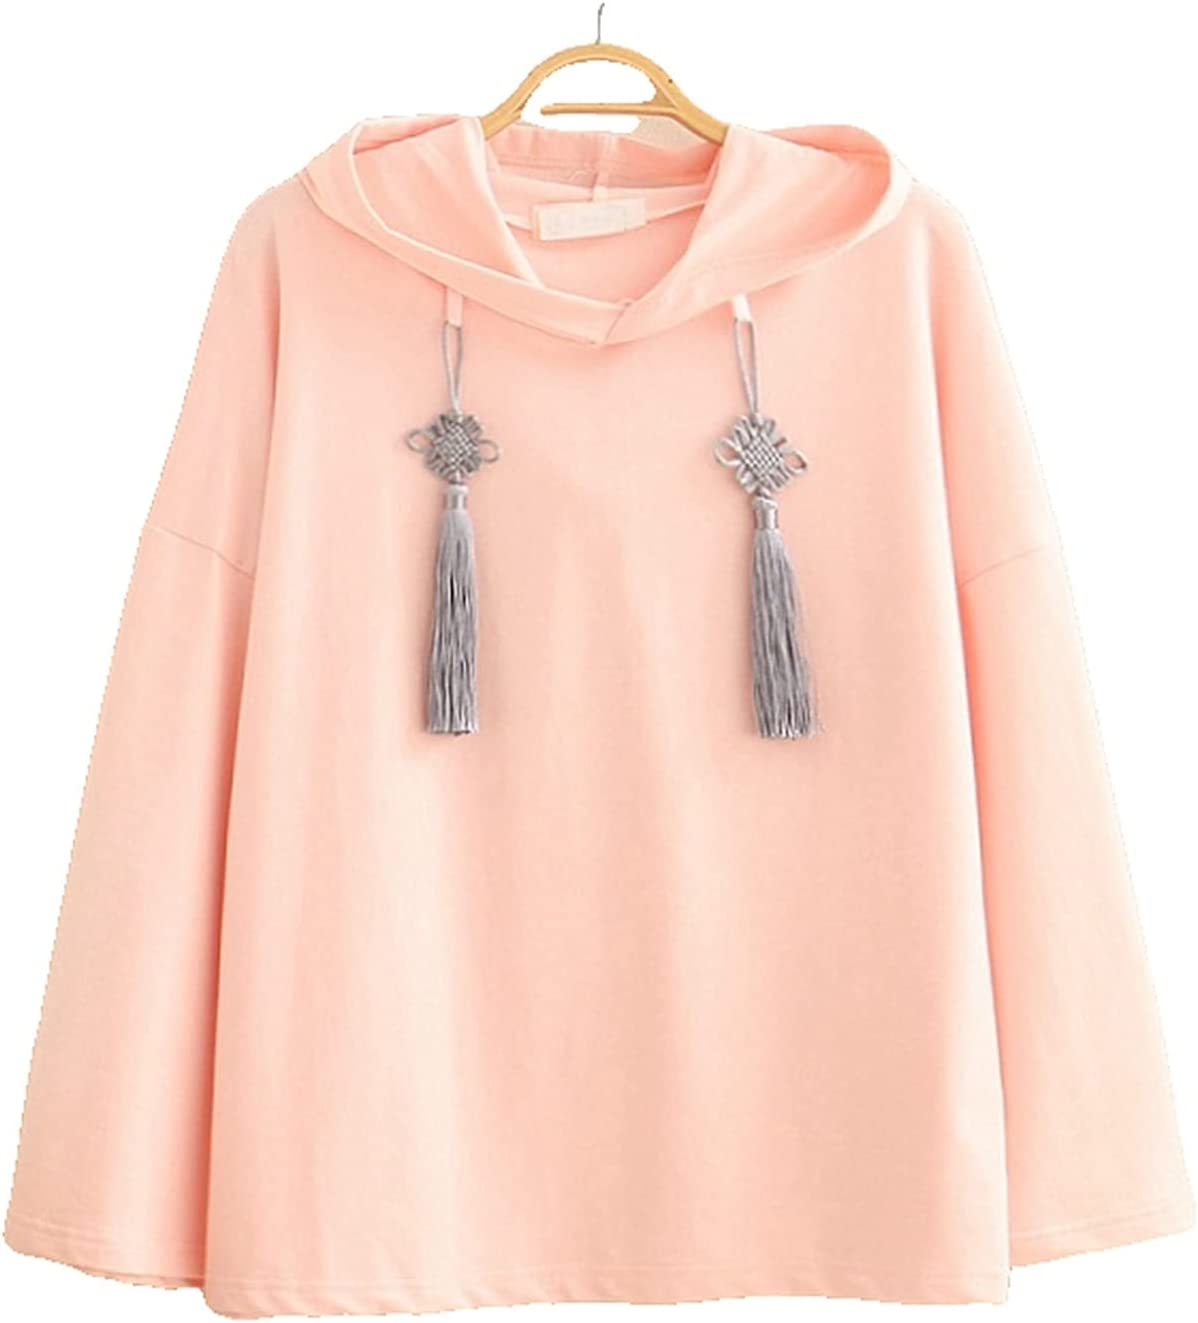 Esdlajks Kawaii Hoodie for Womens - Chinese Style Cuff Chinese Character Embroidery Chinese Knot Tassel Hoodie (Color : Pink, Size : One Size)